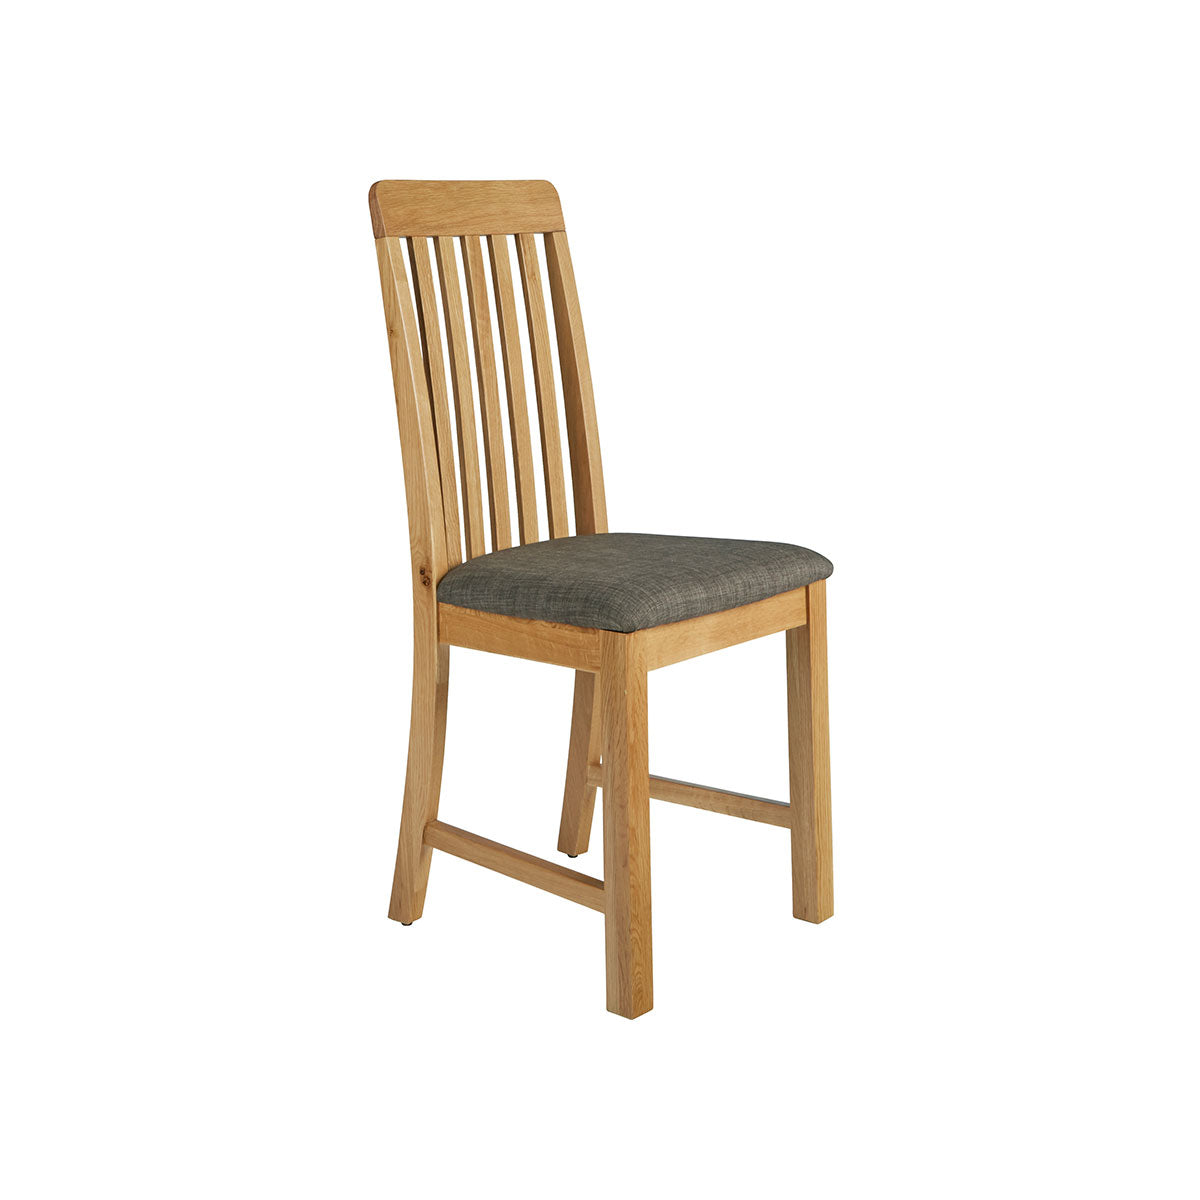 Bath Oak Vertical Slat Dining Chair